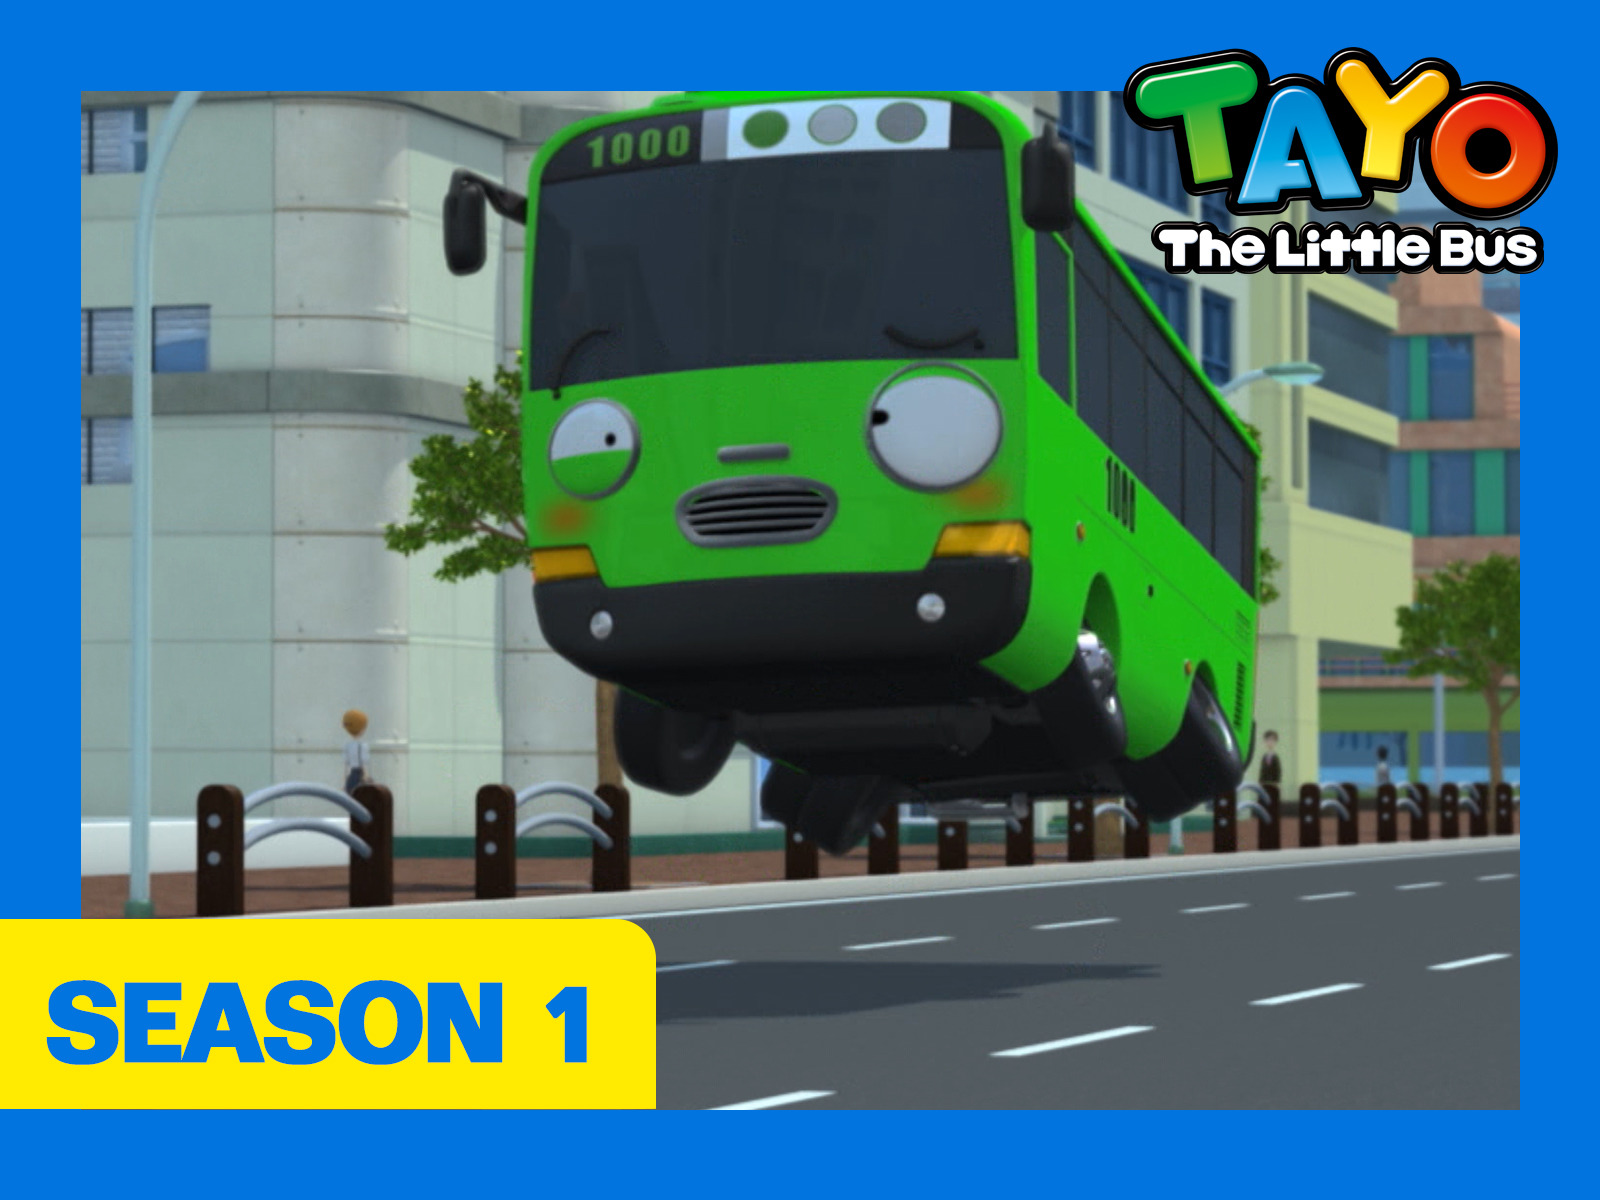 watch tayo the little bus episodes on season 1 tv guide